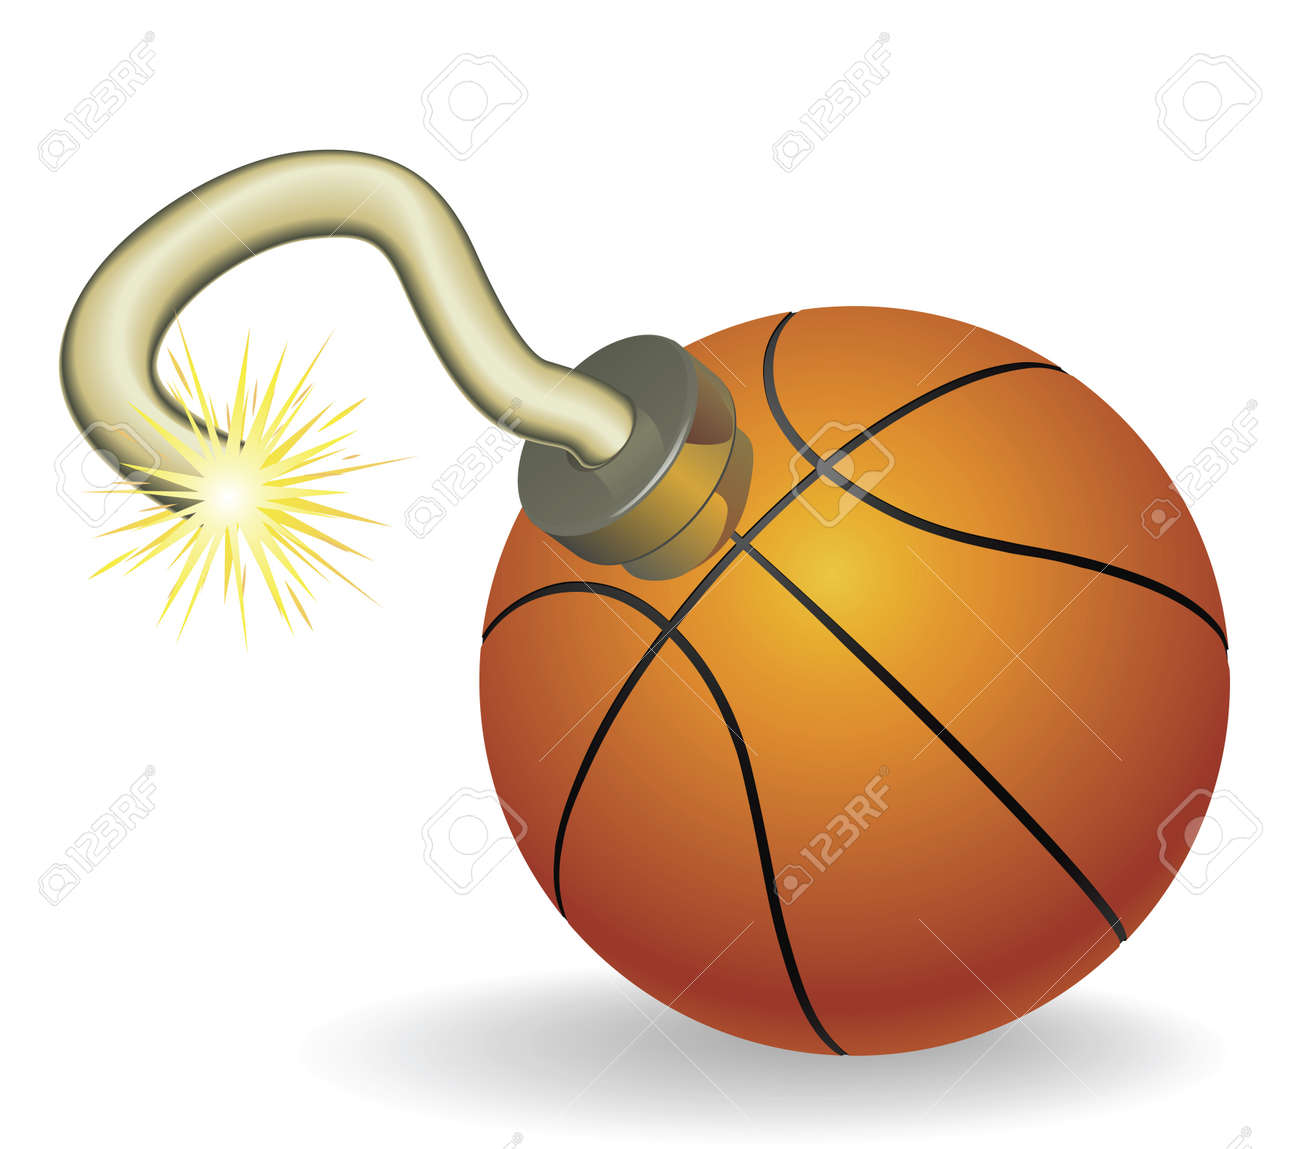 Time bomb in shape of basketball concept. Represents countdown to explosive event or ongoing basketball crisis Stock Vector - 9720996